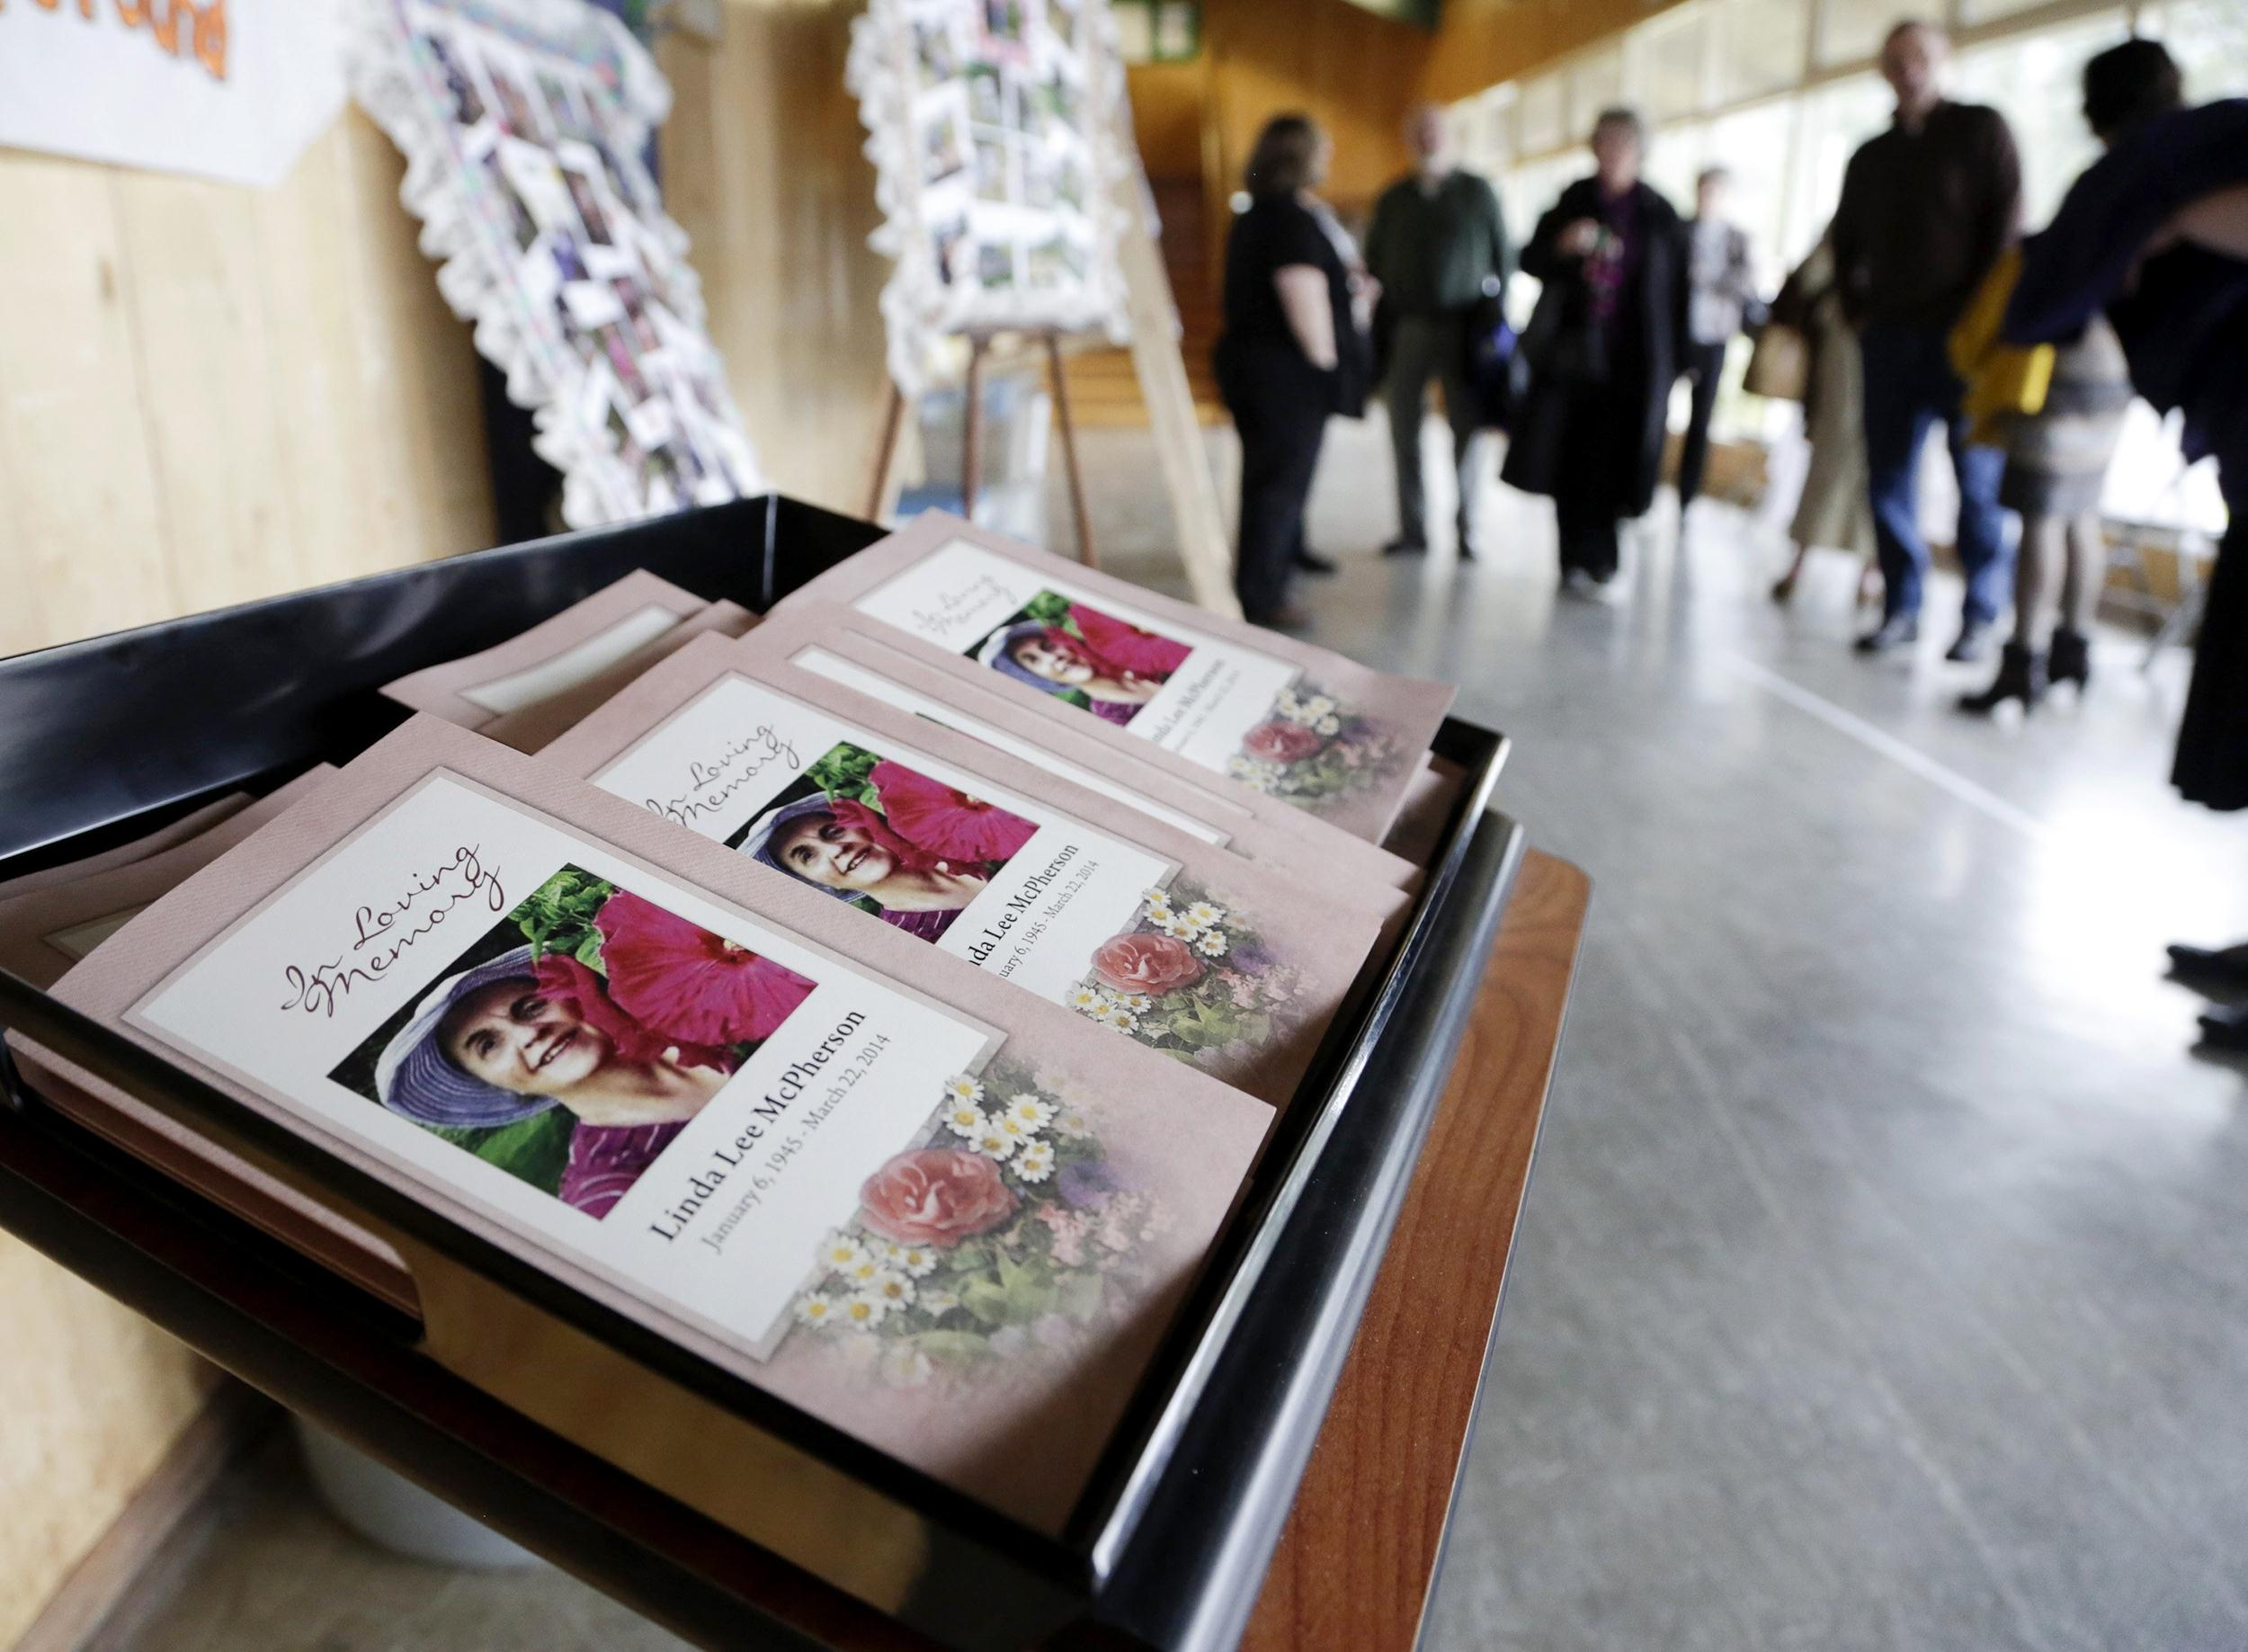 Image: Funeral programs are seen as people arrive for funeral services for McPherson at the Community Center in Darrington